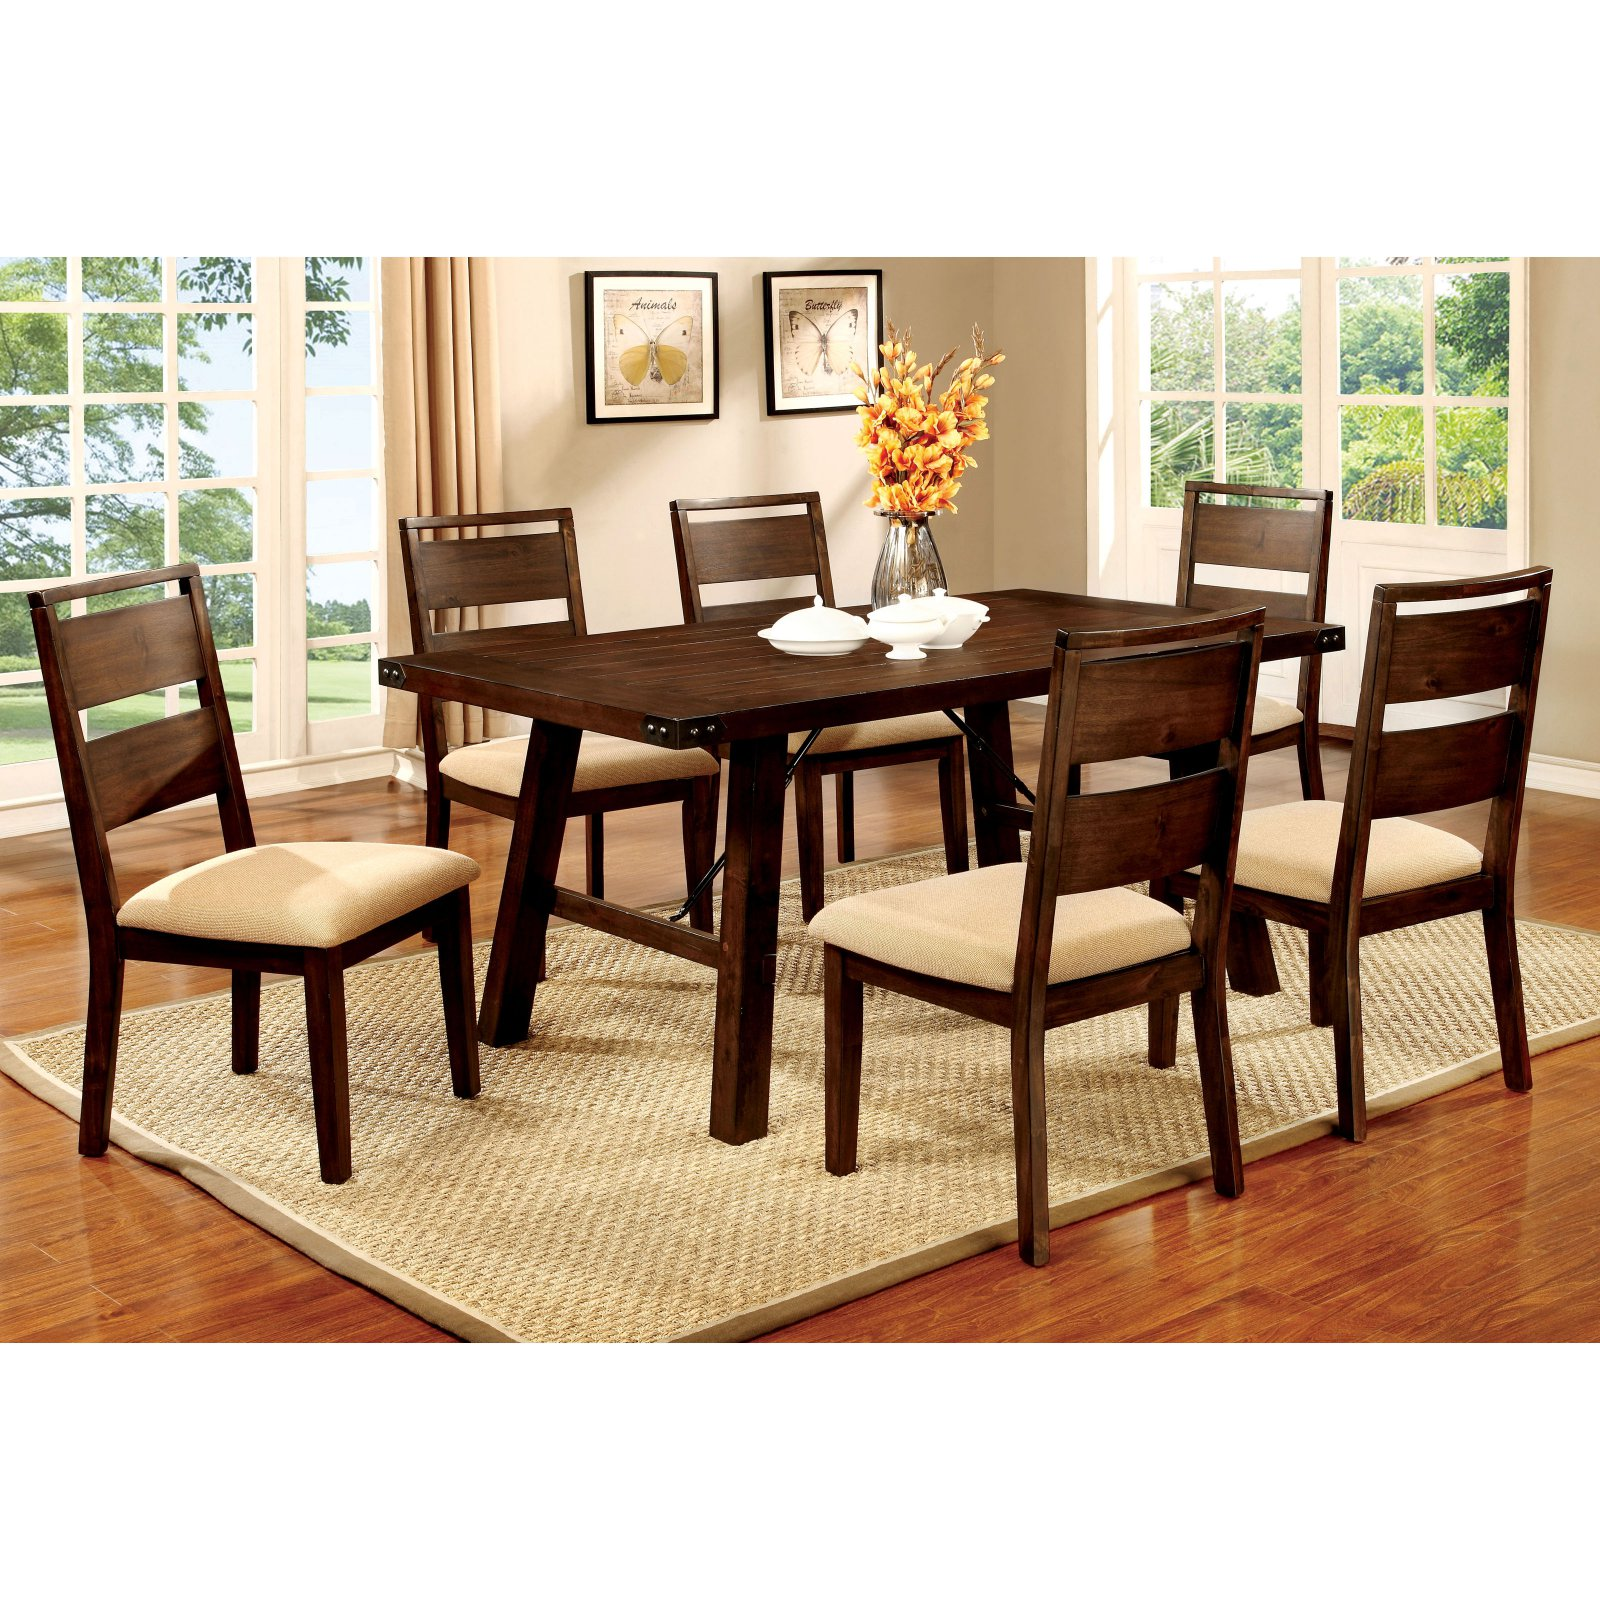 Furniture of America Hockenberry Dining Table